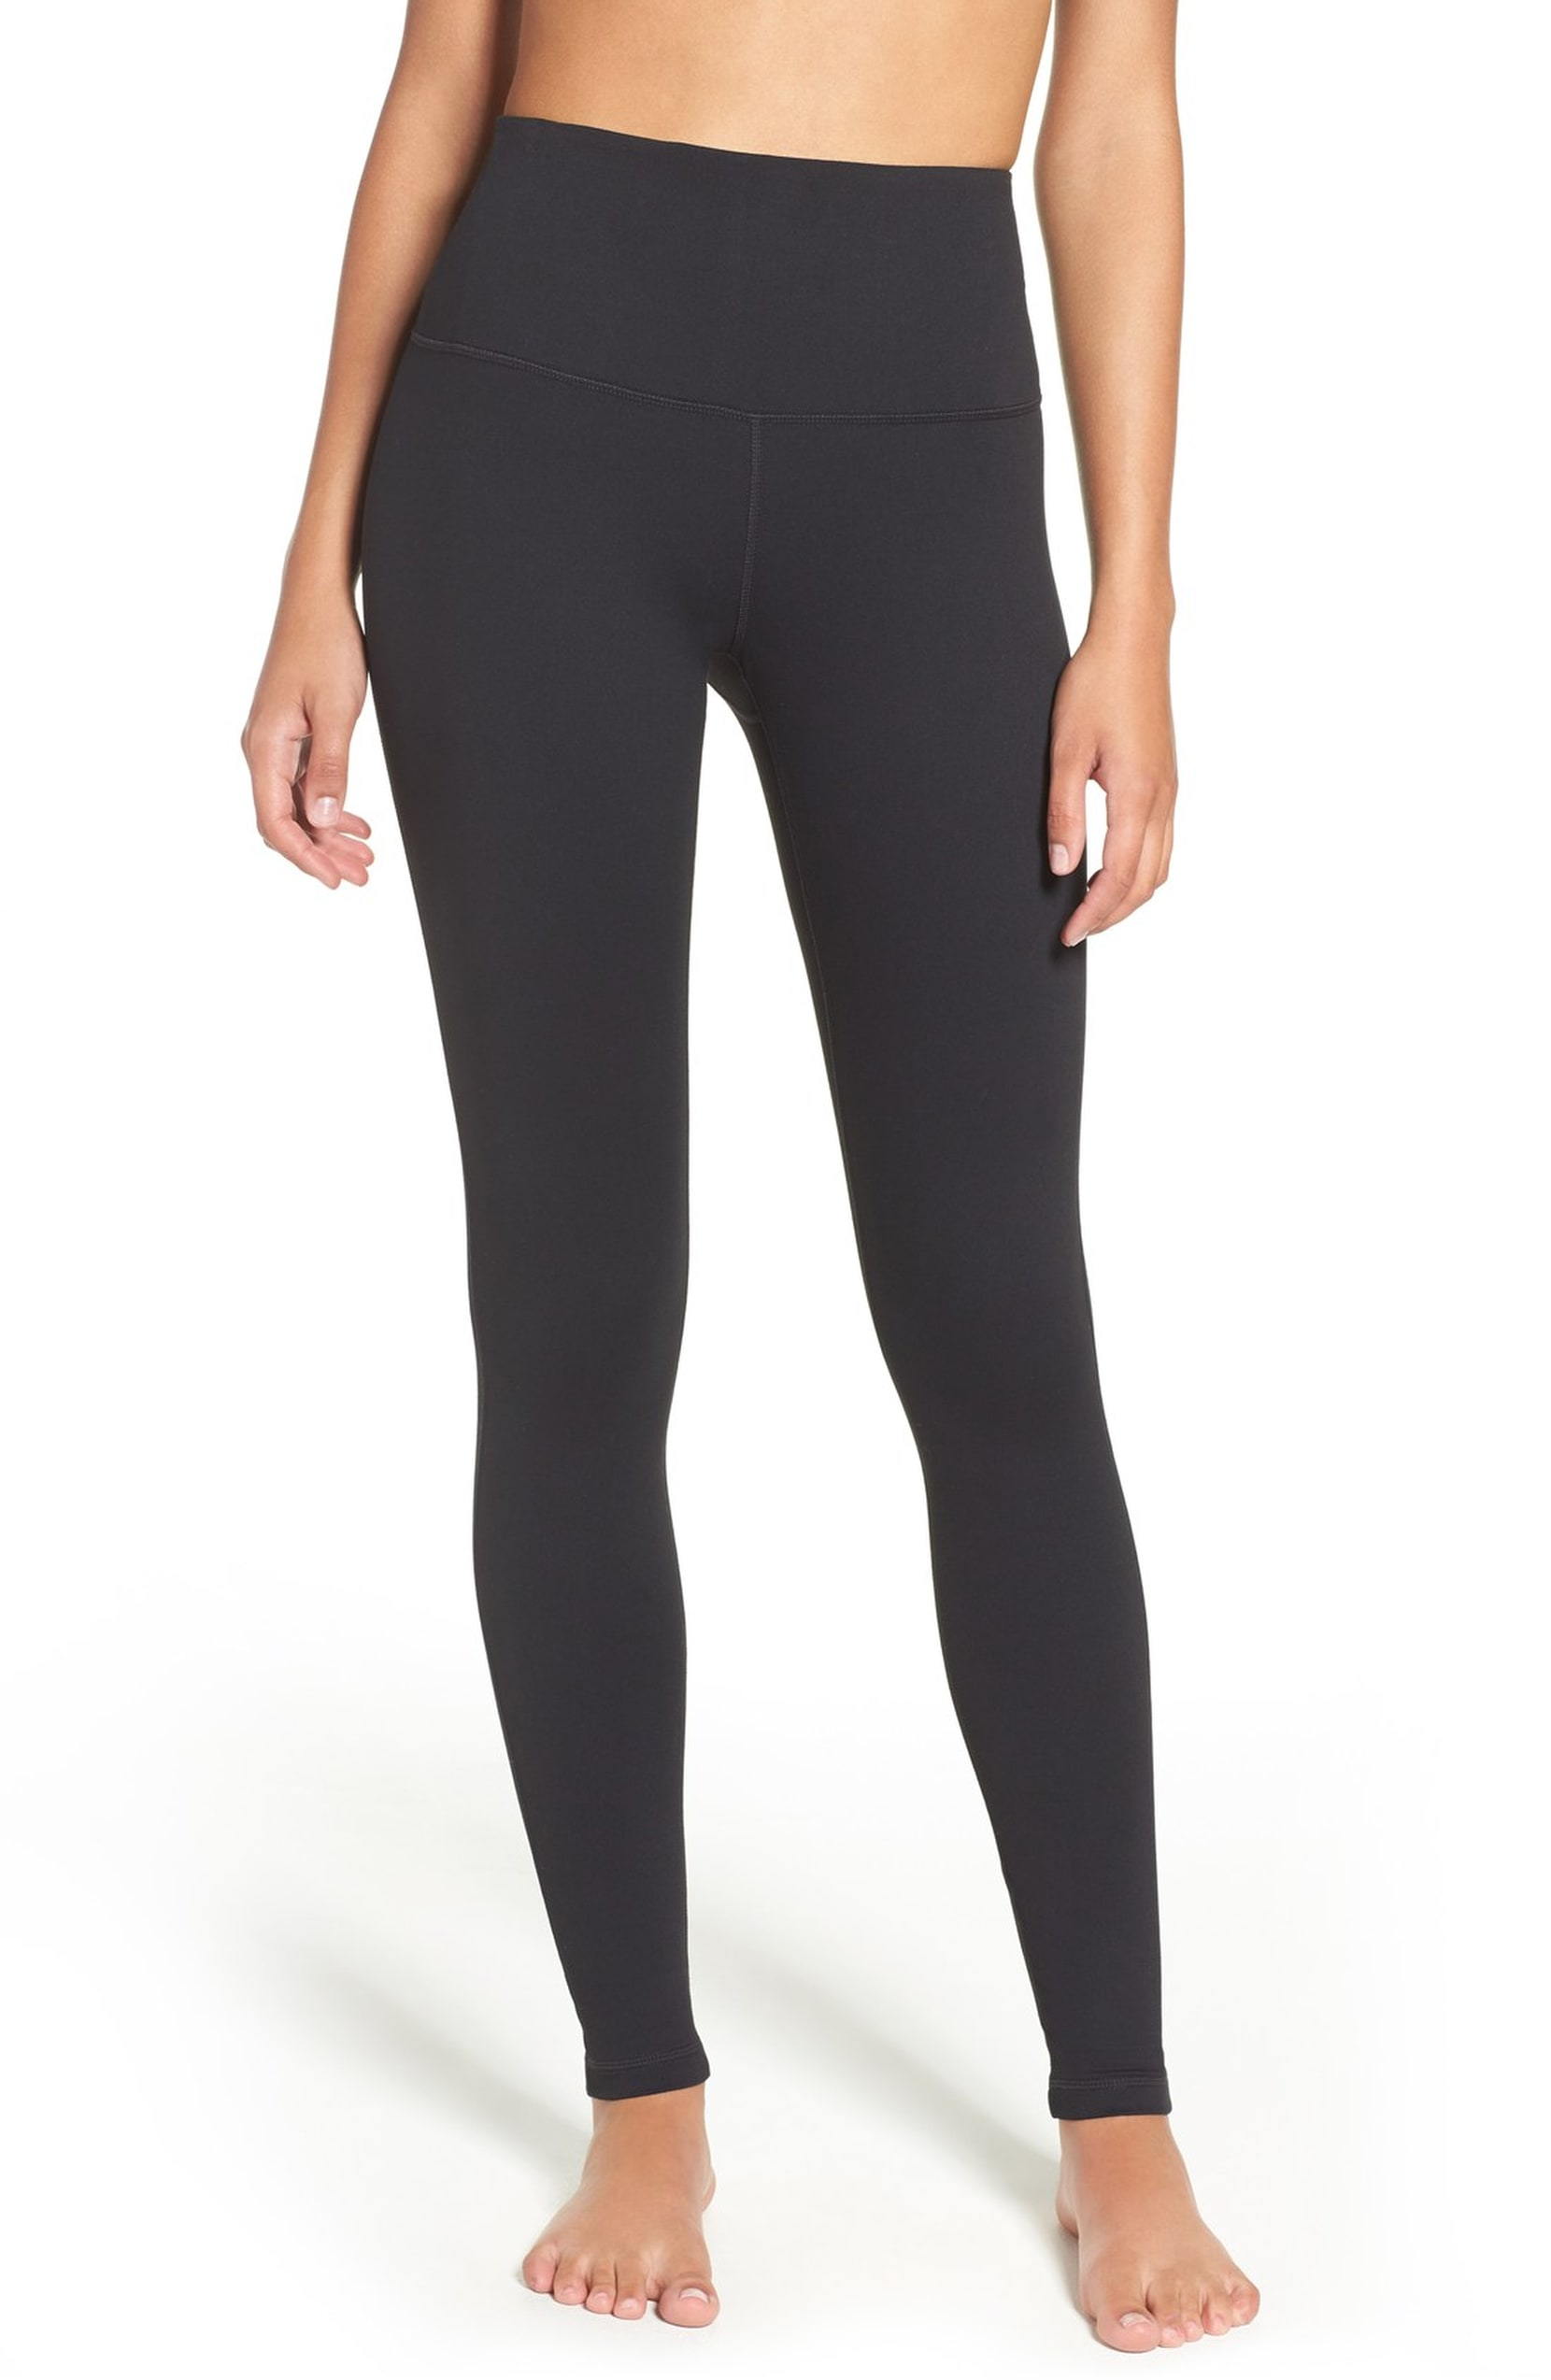 Live In High Waist Leggings: Sale: $35.90 / After Sale: $54.00. (Image: Nordstrom){ }